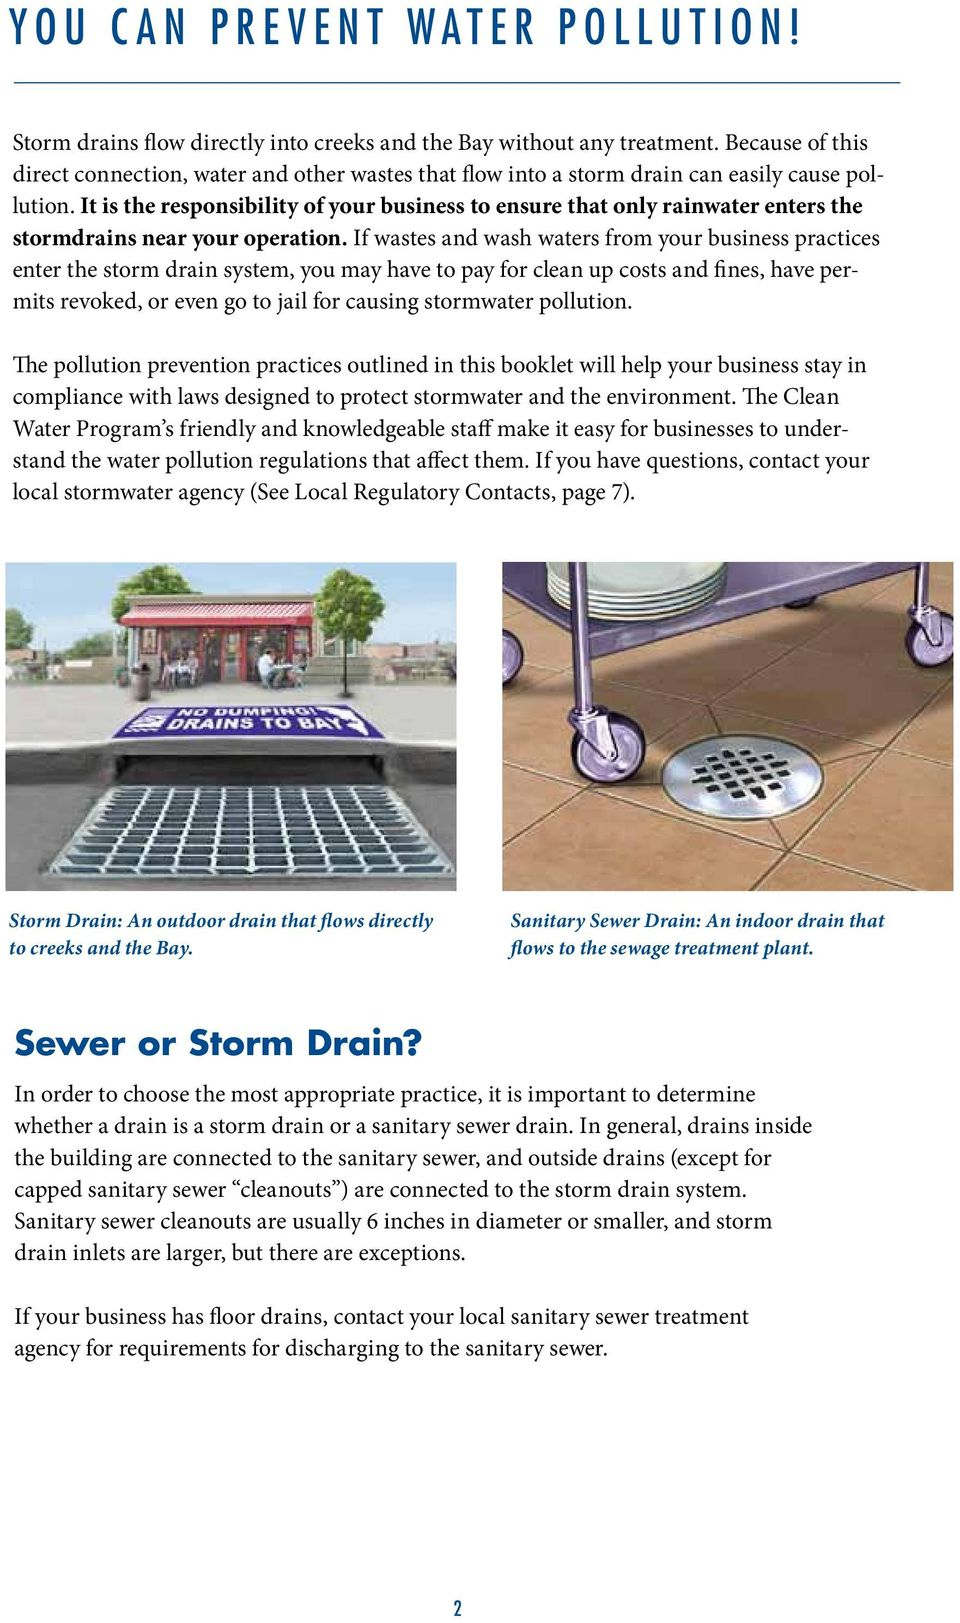 It is the responsibility of your business to ensure that only rainwater enters the stormdrains near your operation.